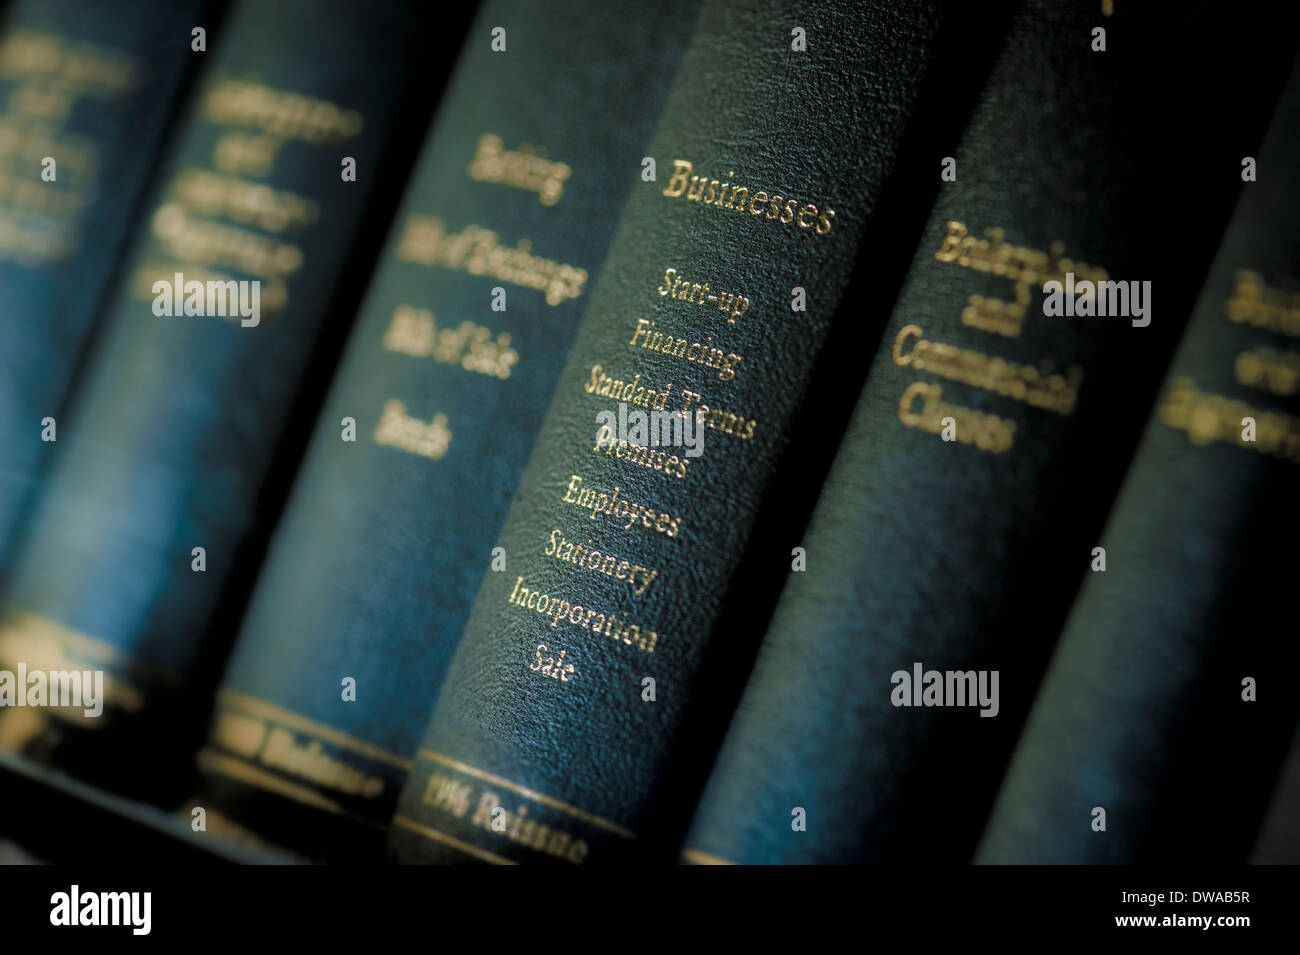 Legal reference books on corporate law for business - Stock Image